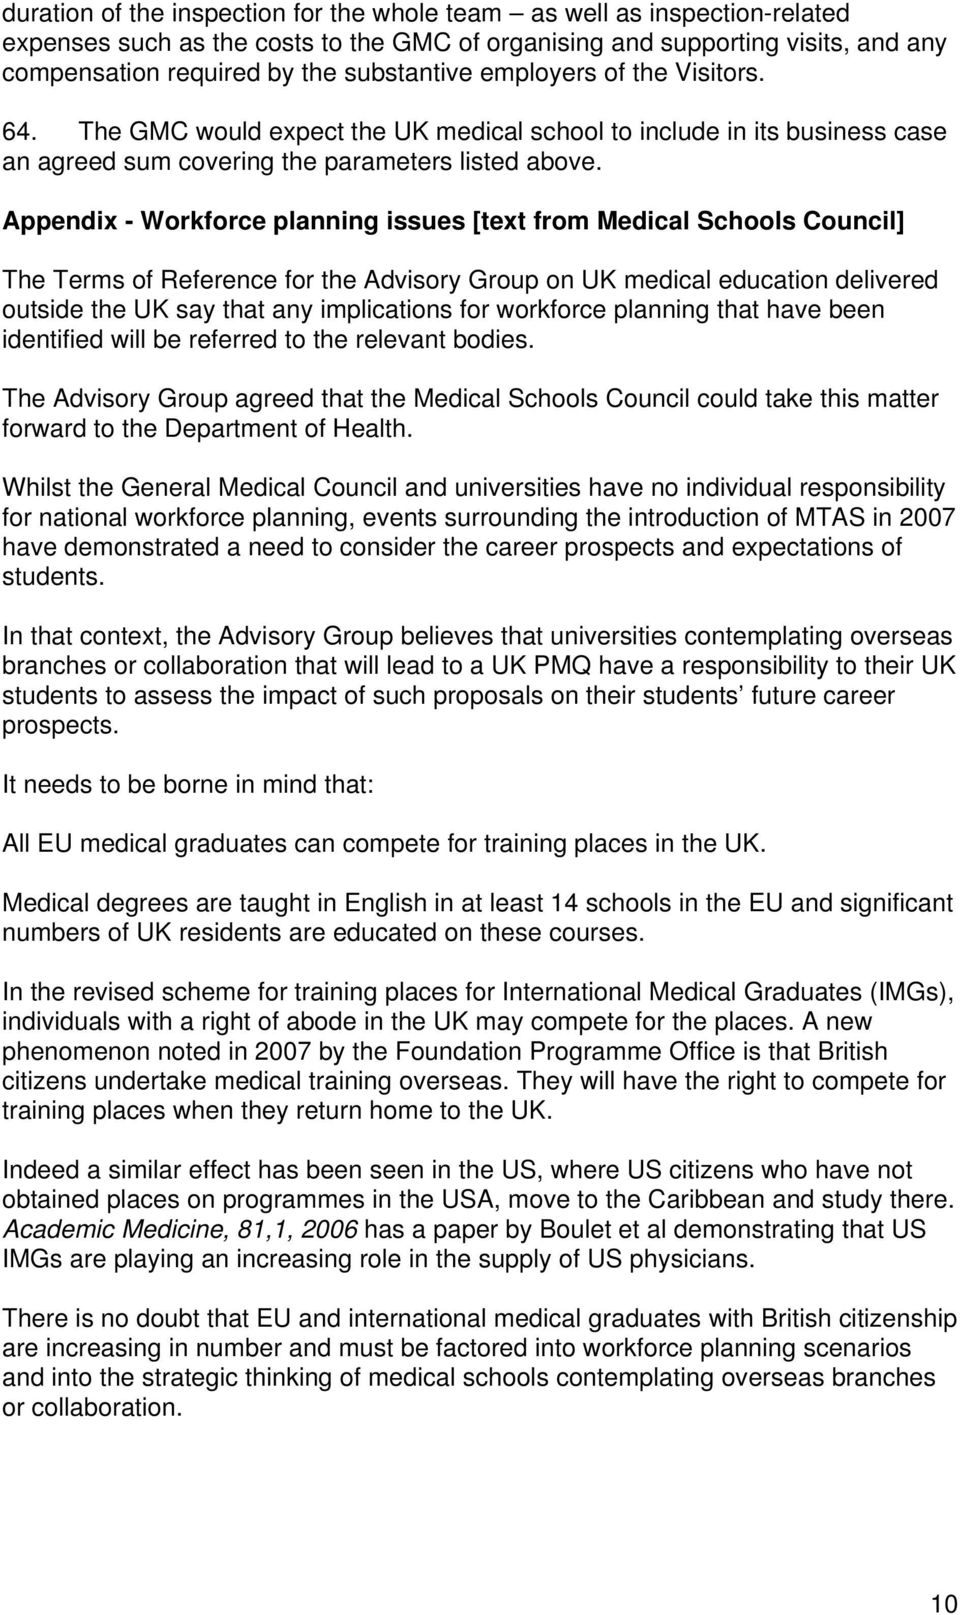 Appendix - Workforce planning issues [text from Medical Schools Council] The Terms of Reference for the Advisory Group on UK medical education delivered outside the UK say that any implications for